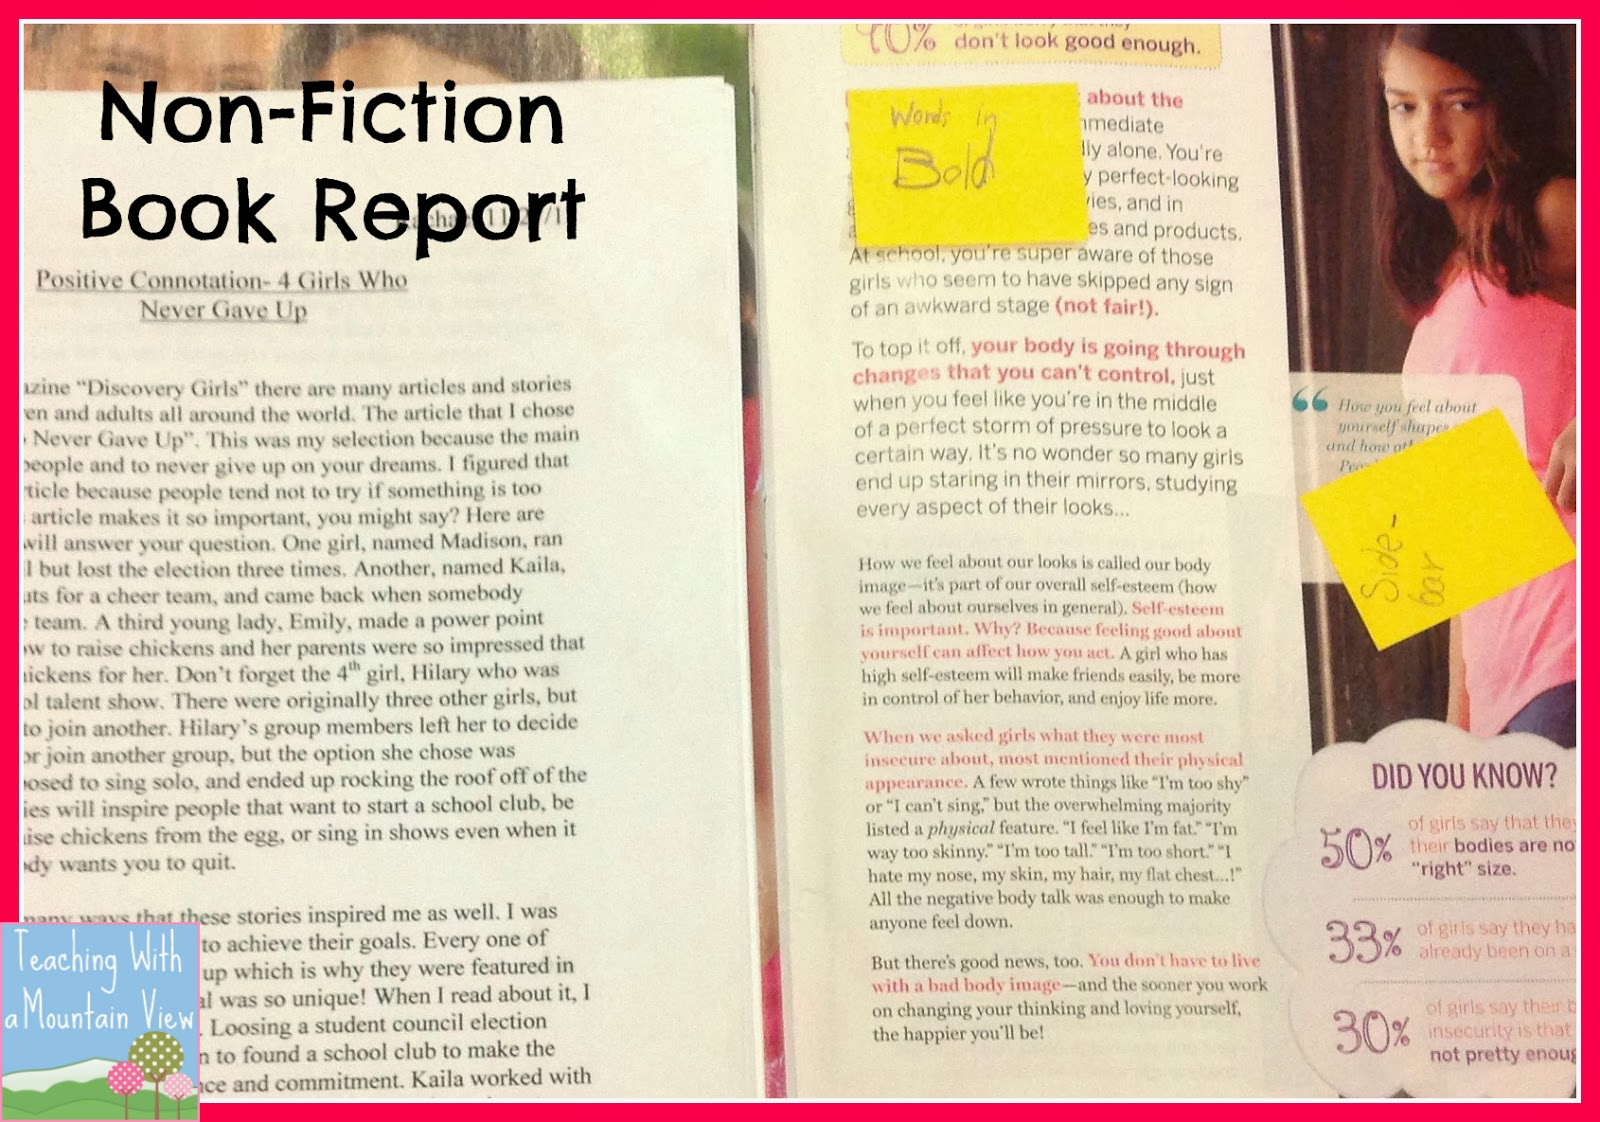 How to Write a Nonfiction Book Report